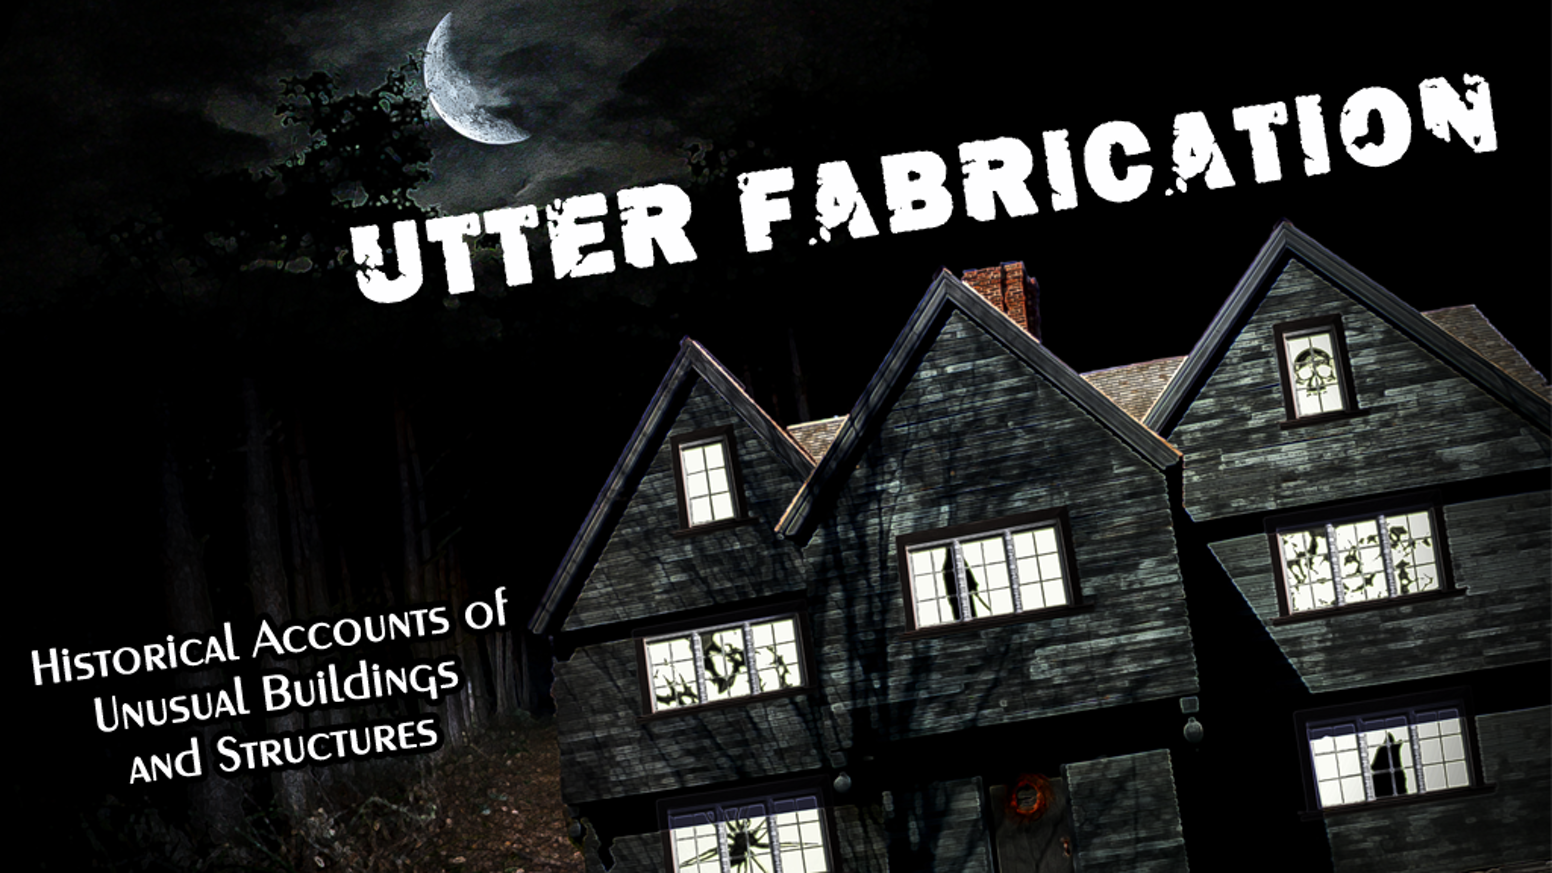 We're making an anthology of short fiction about haunted houses, non-Euclidean buildings, and other weird places.